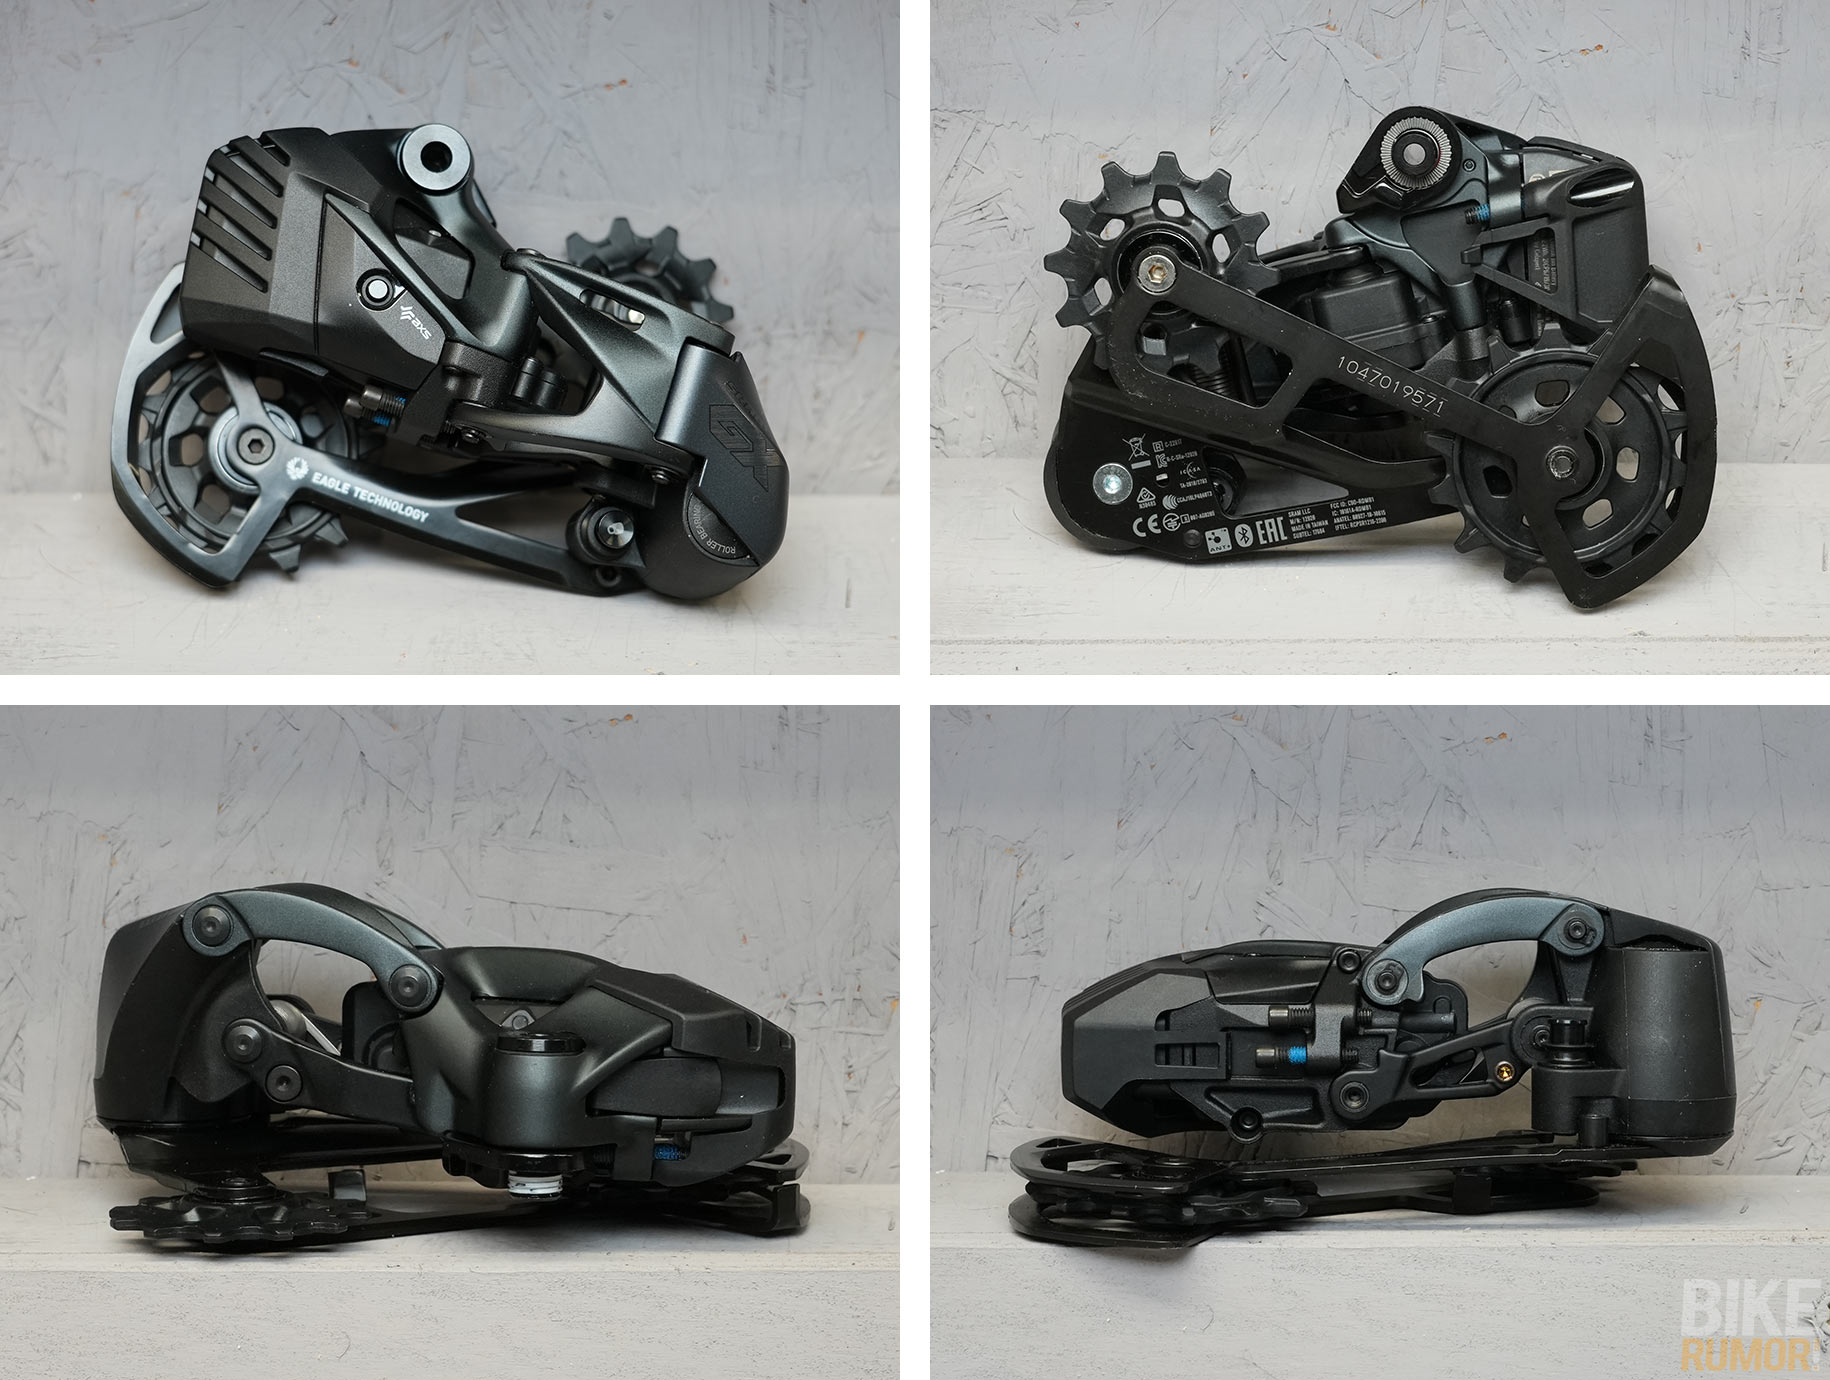 sram gx eagle axs wireless rear derailleur comparison